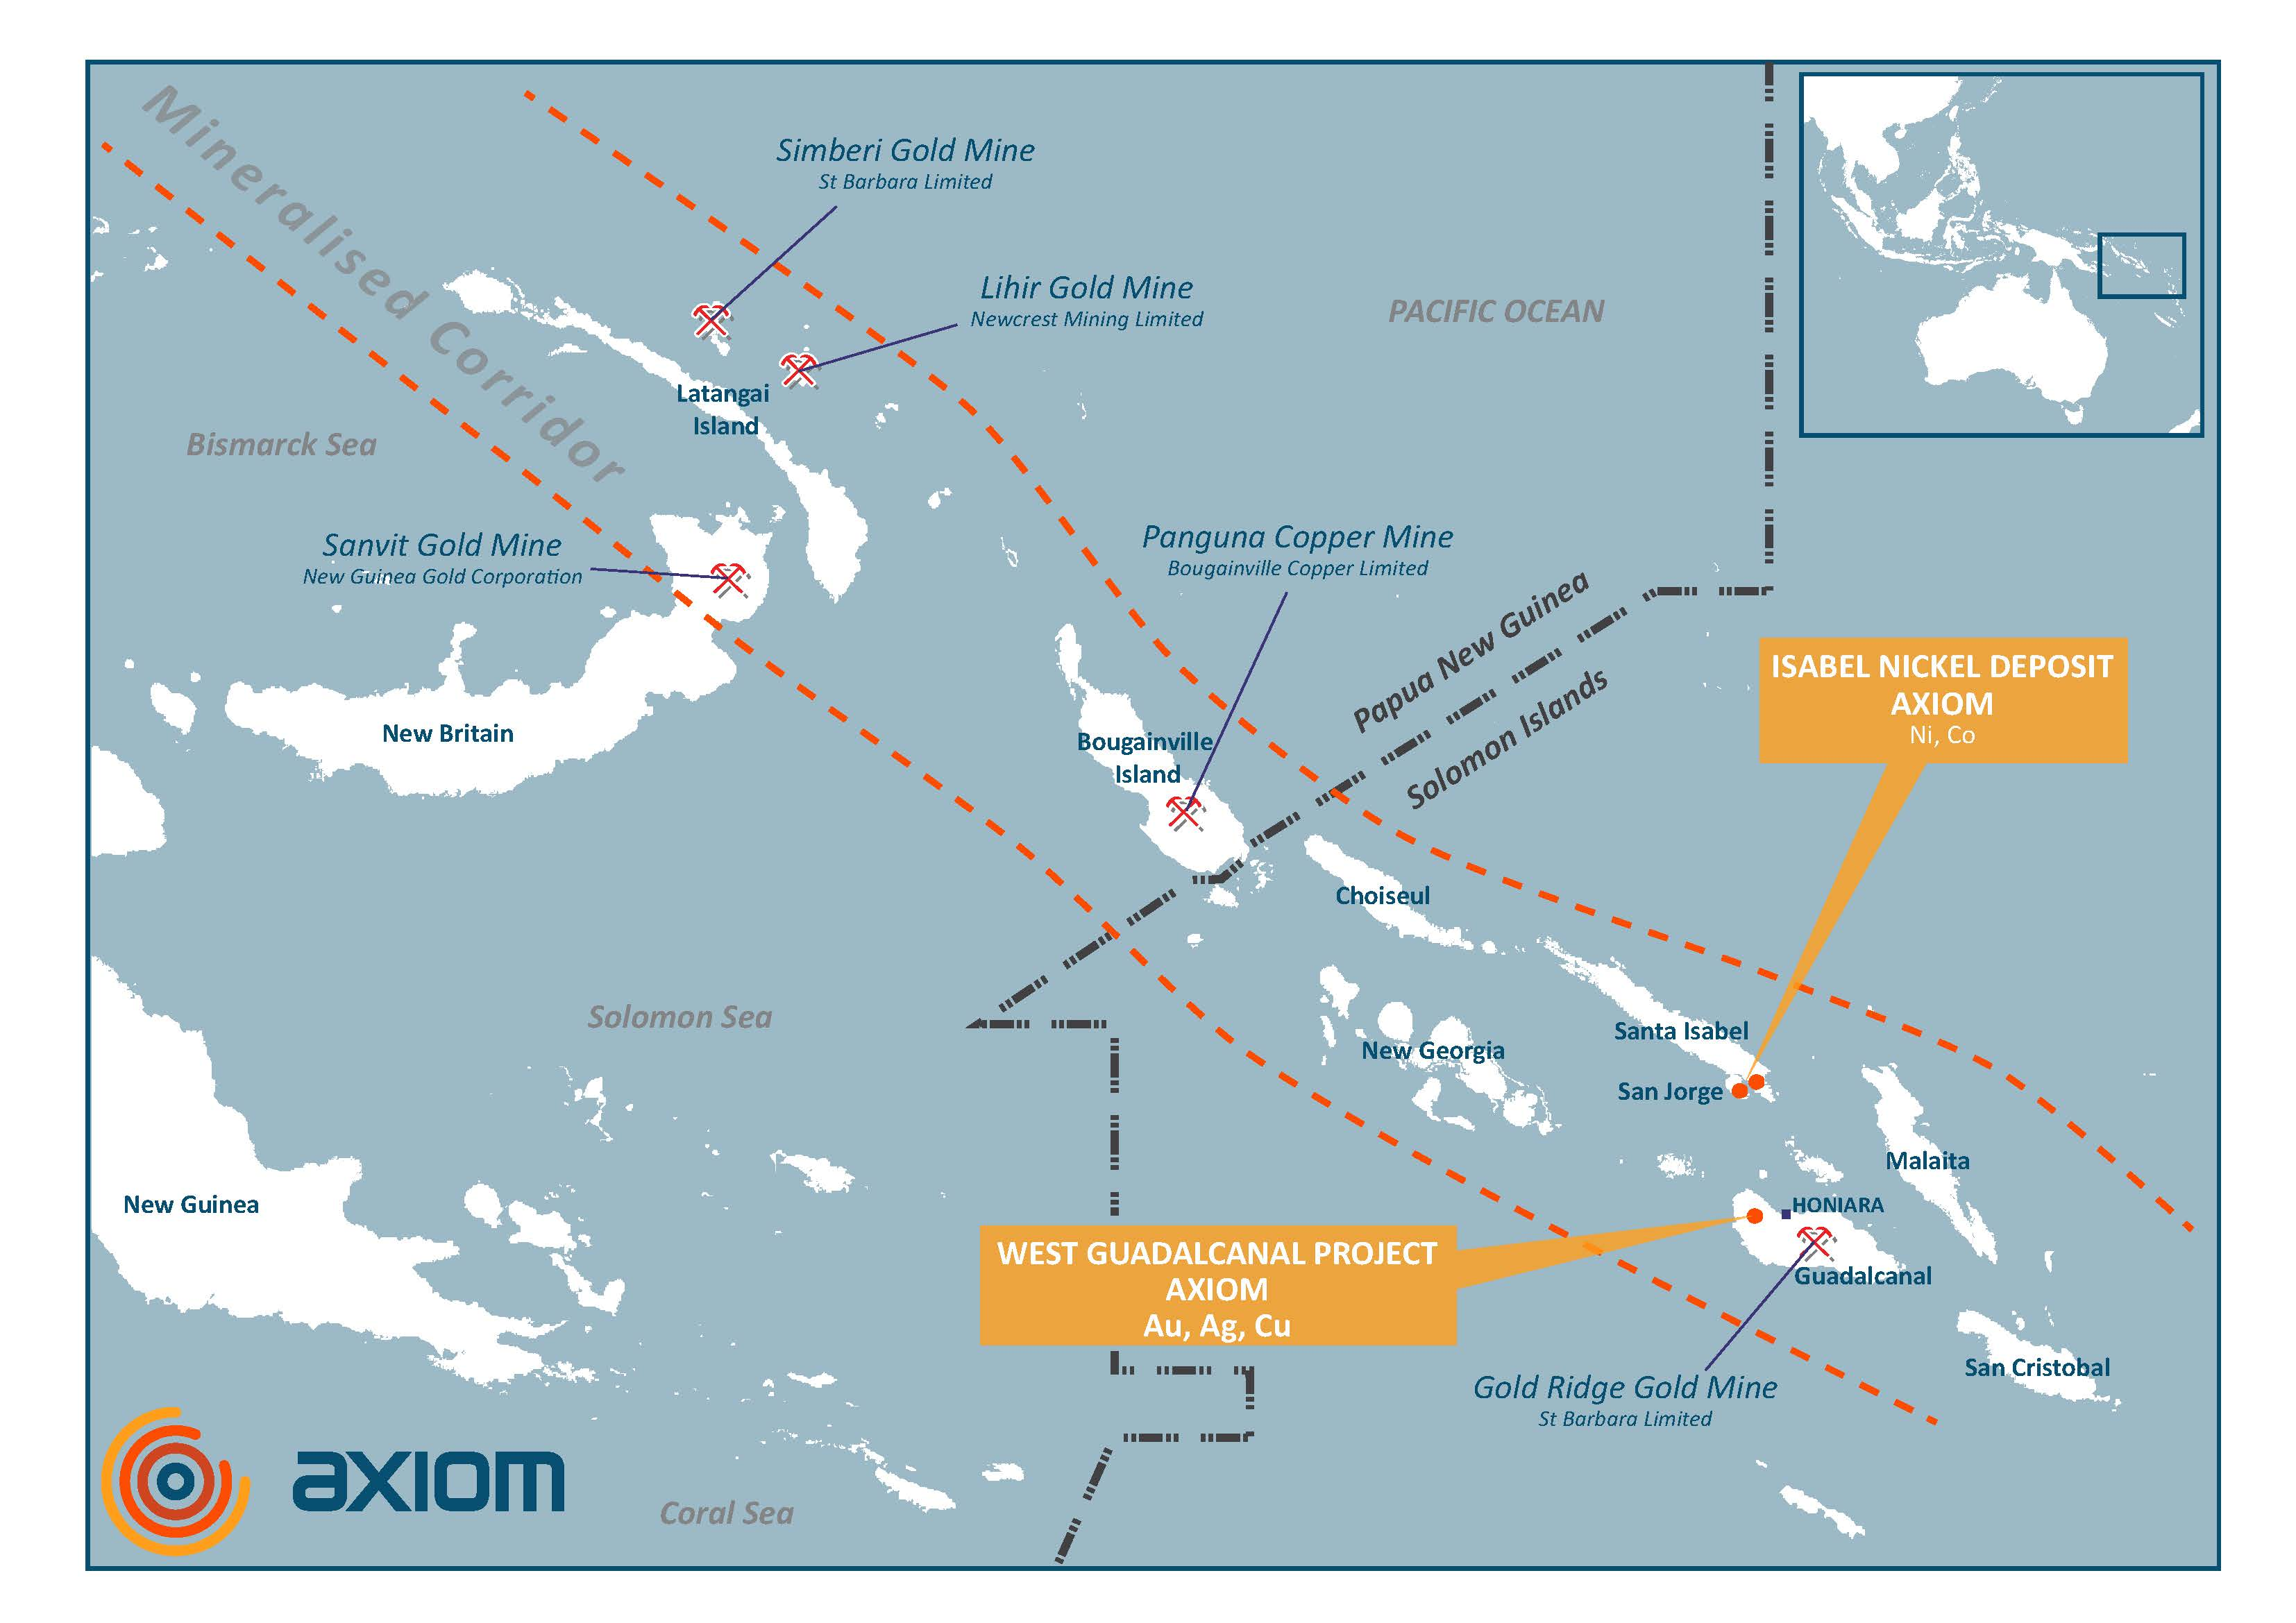 Axiom Mining secures funding for Isabel nickel project